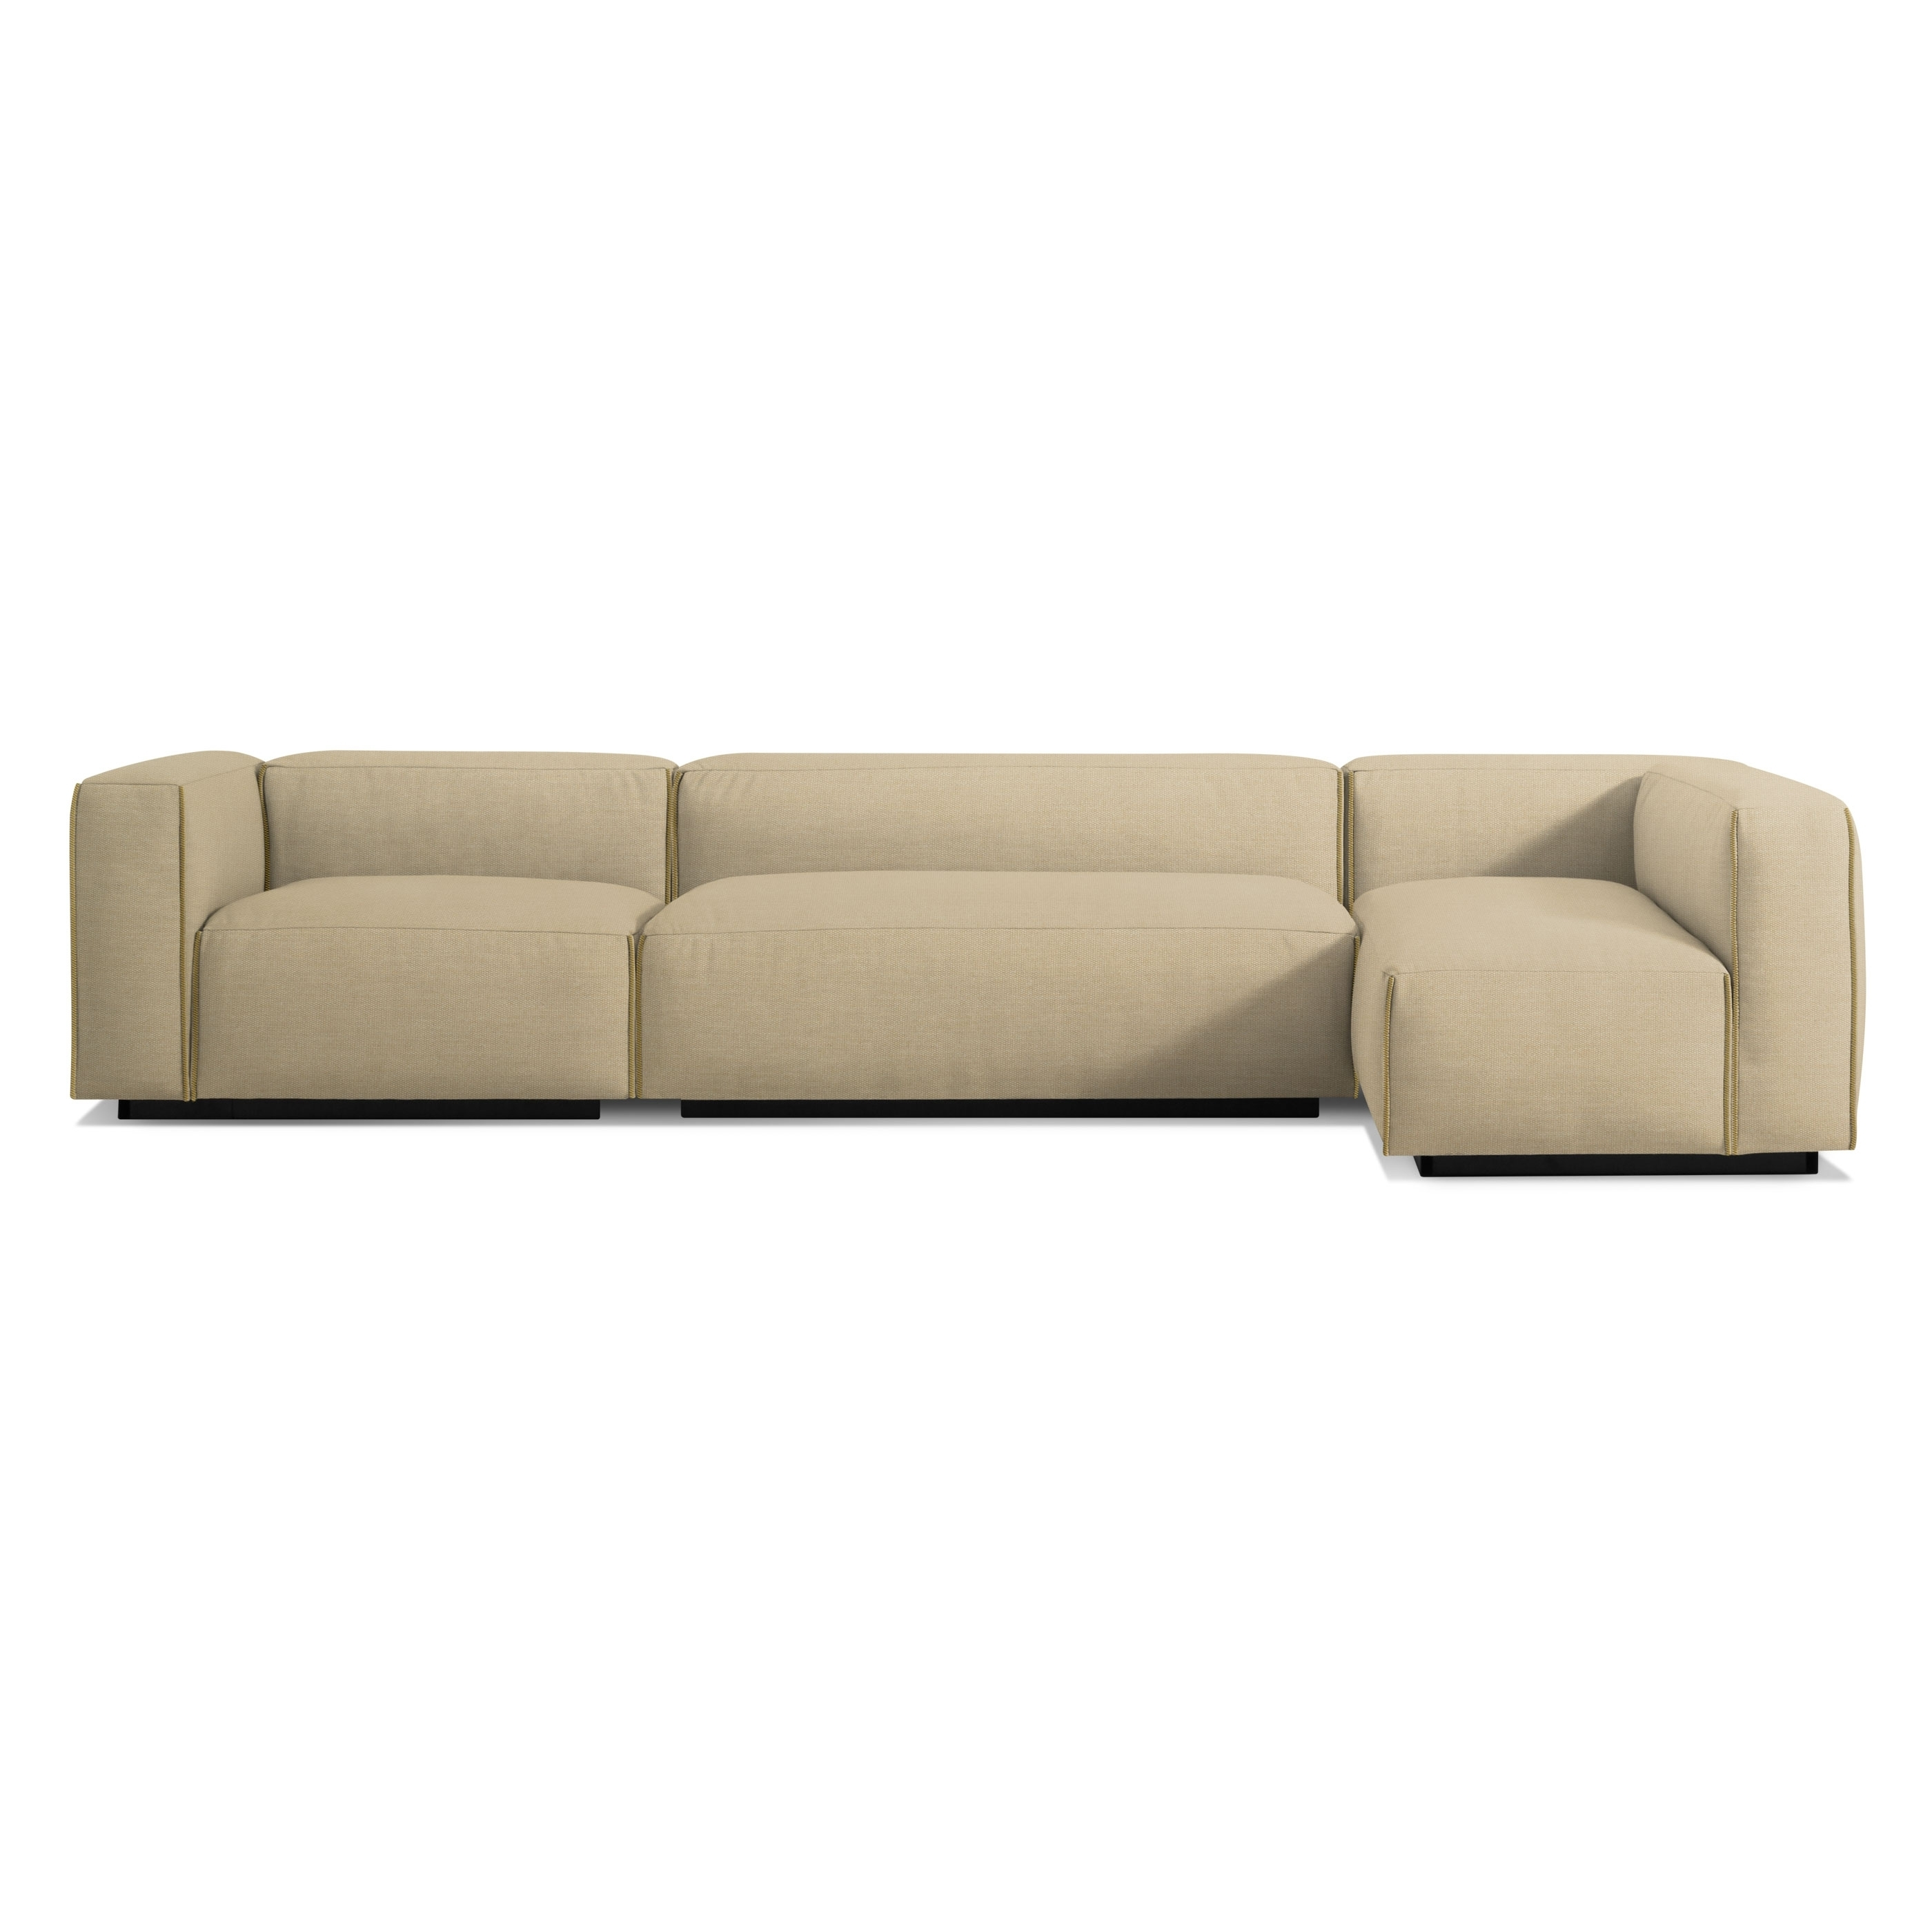 Cleon Medium+ Sectional Sofa – Modern Sofas And Sectionals – Bludot With Newfoundland Sectional Sofas (View 9 of 10)